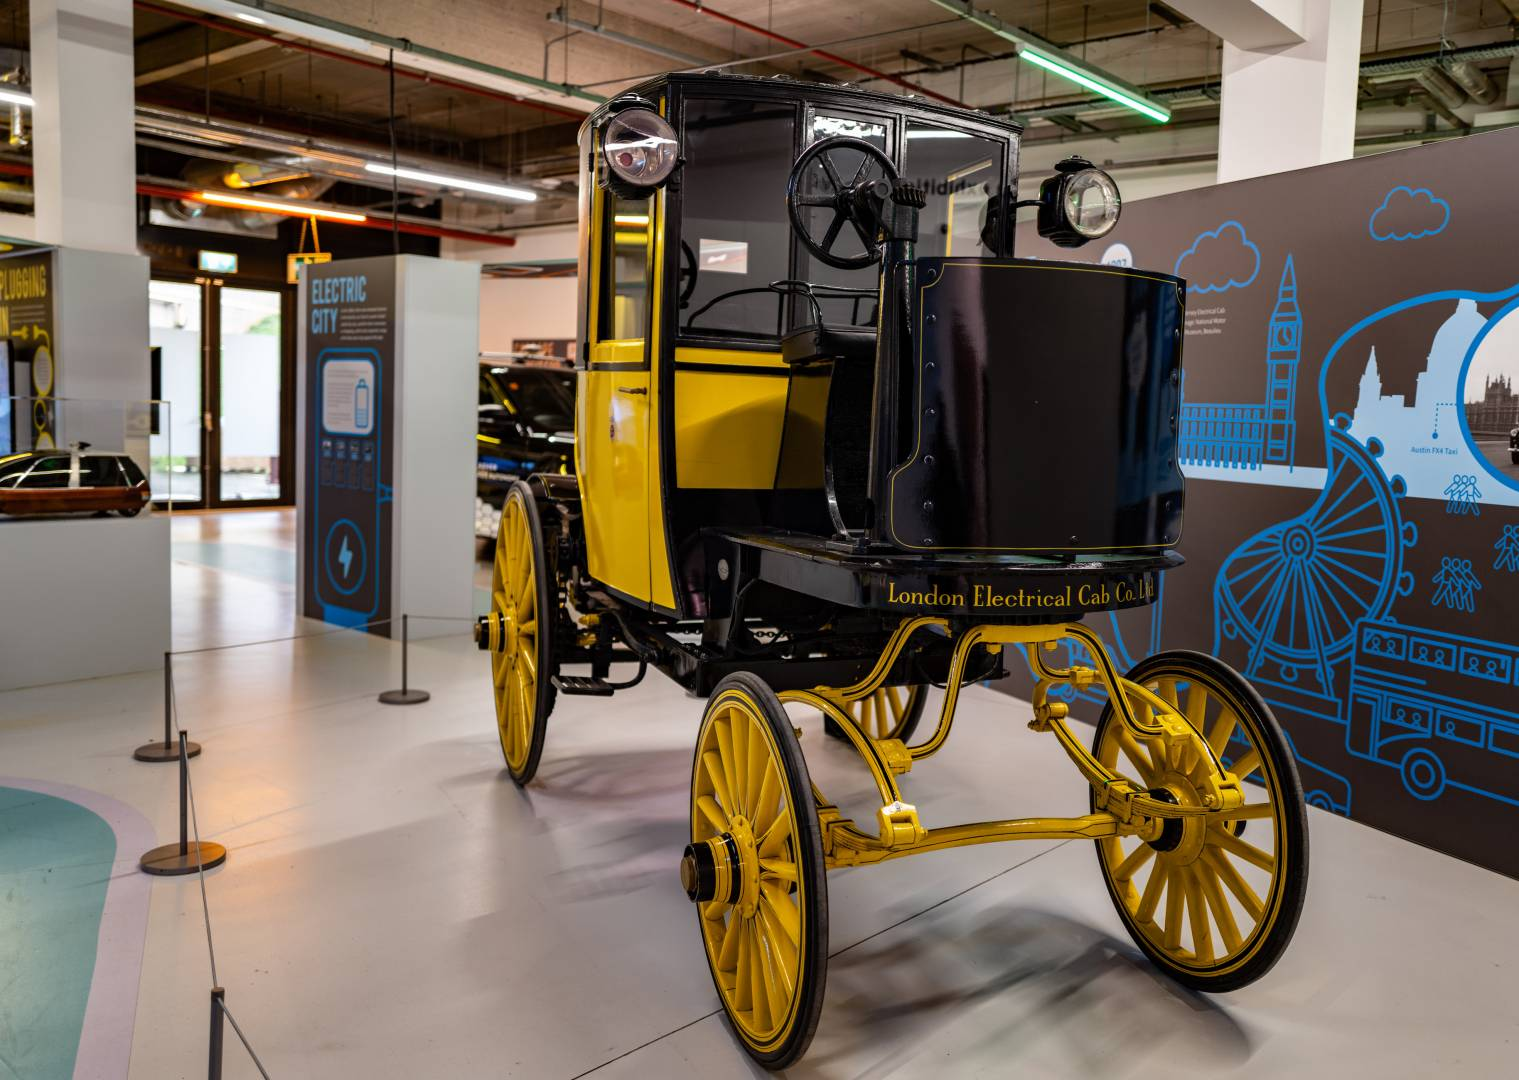 The I-Pace isn't all that revolutionary after all. This London Electrical Cab Co vehicle is an example of one of rthe earliest applications of electric power in road transport